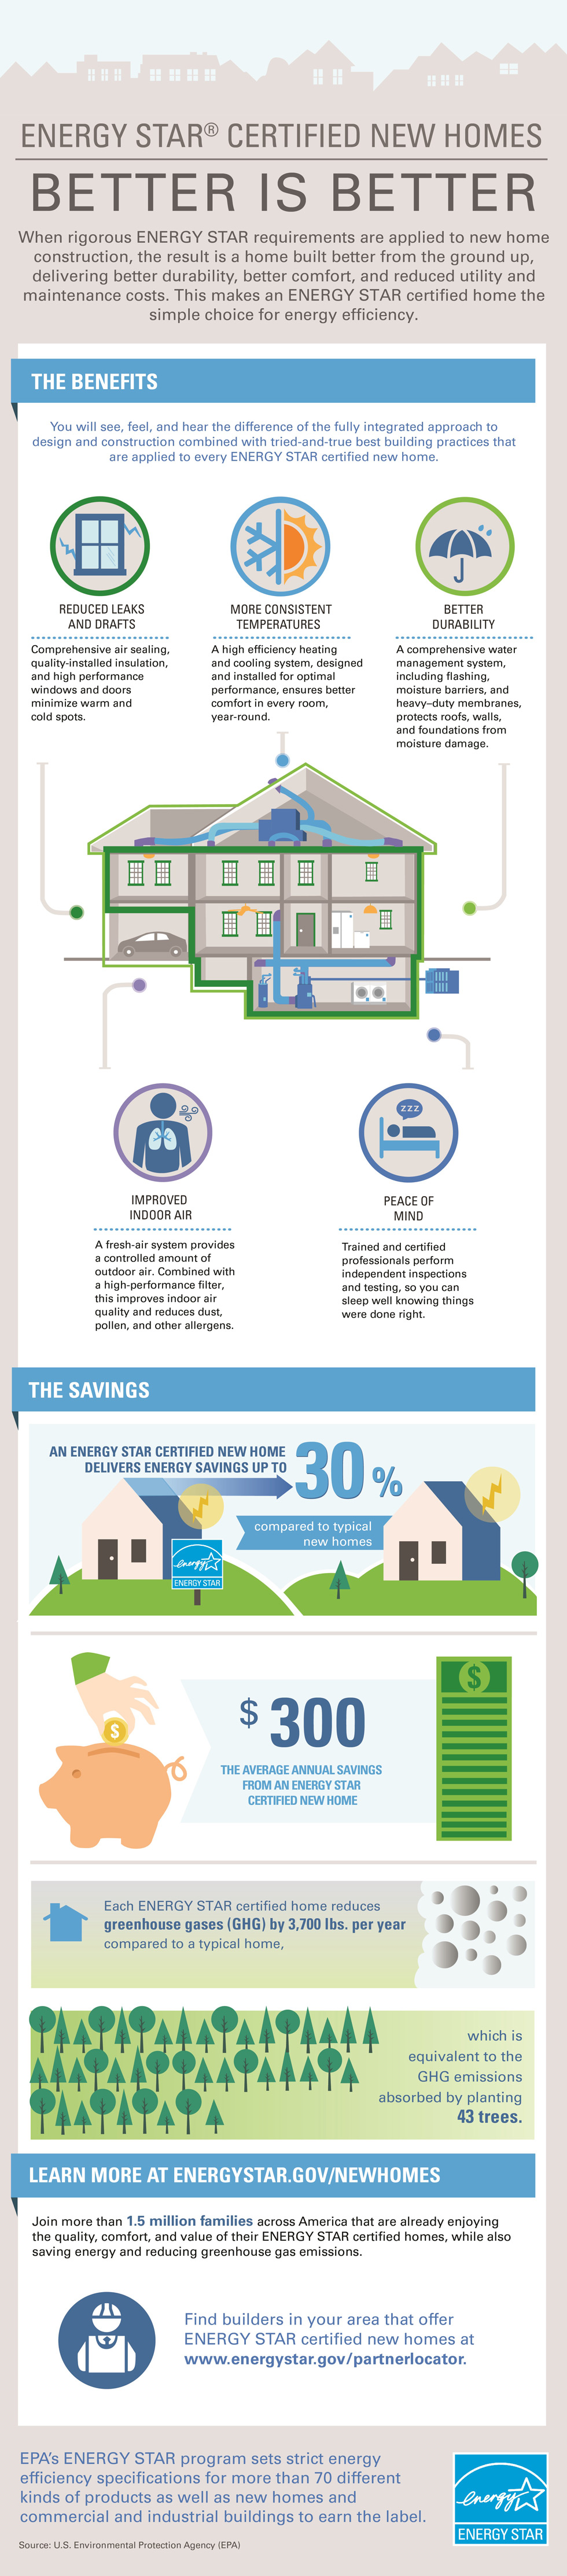 Pin by Wolfworks on Energy and Homes Energy star, Energy